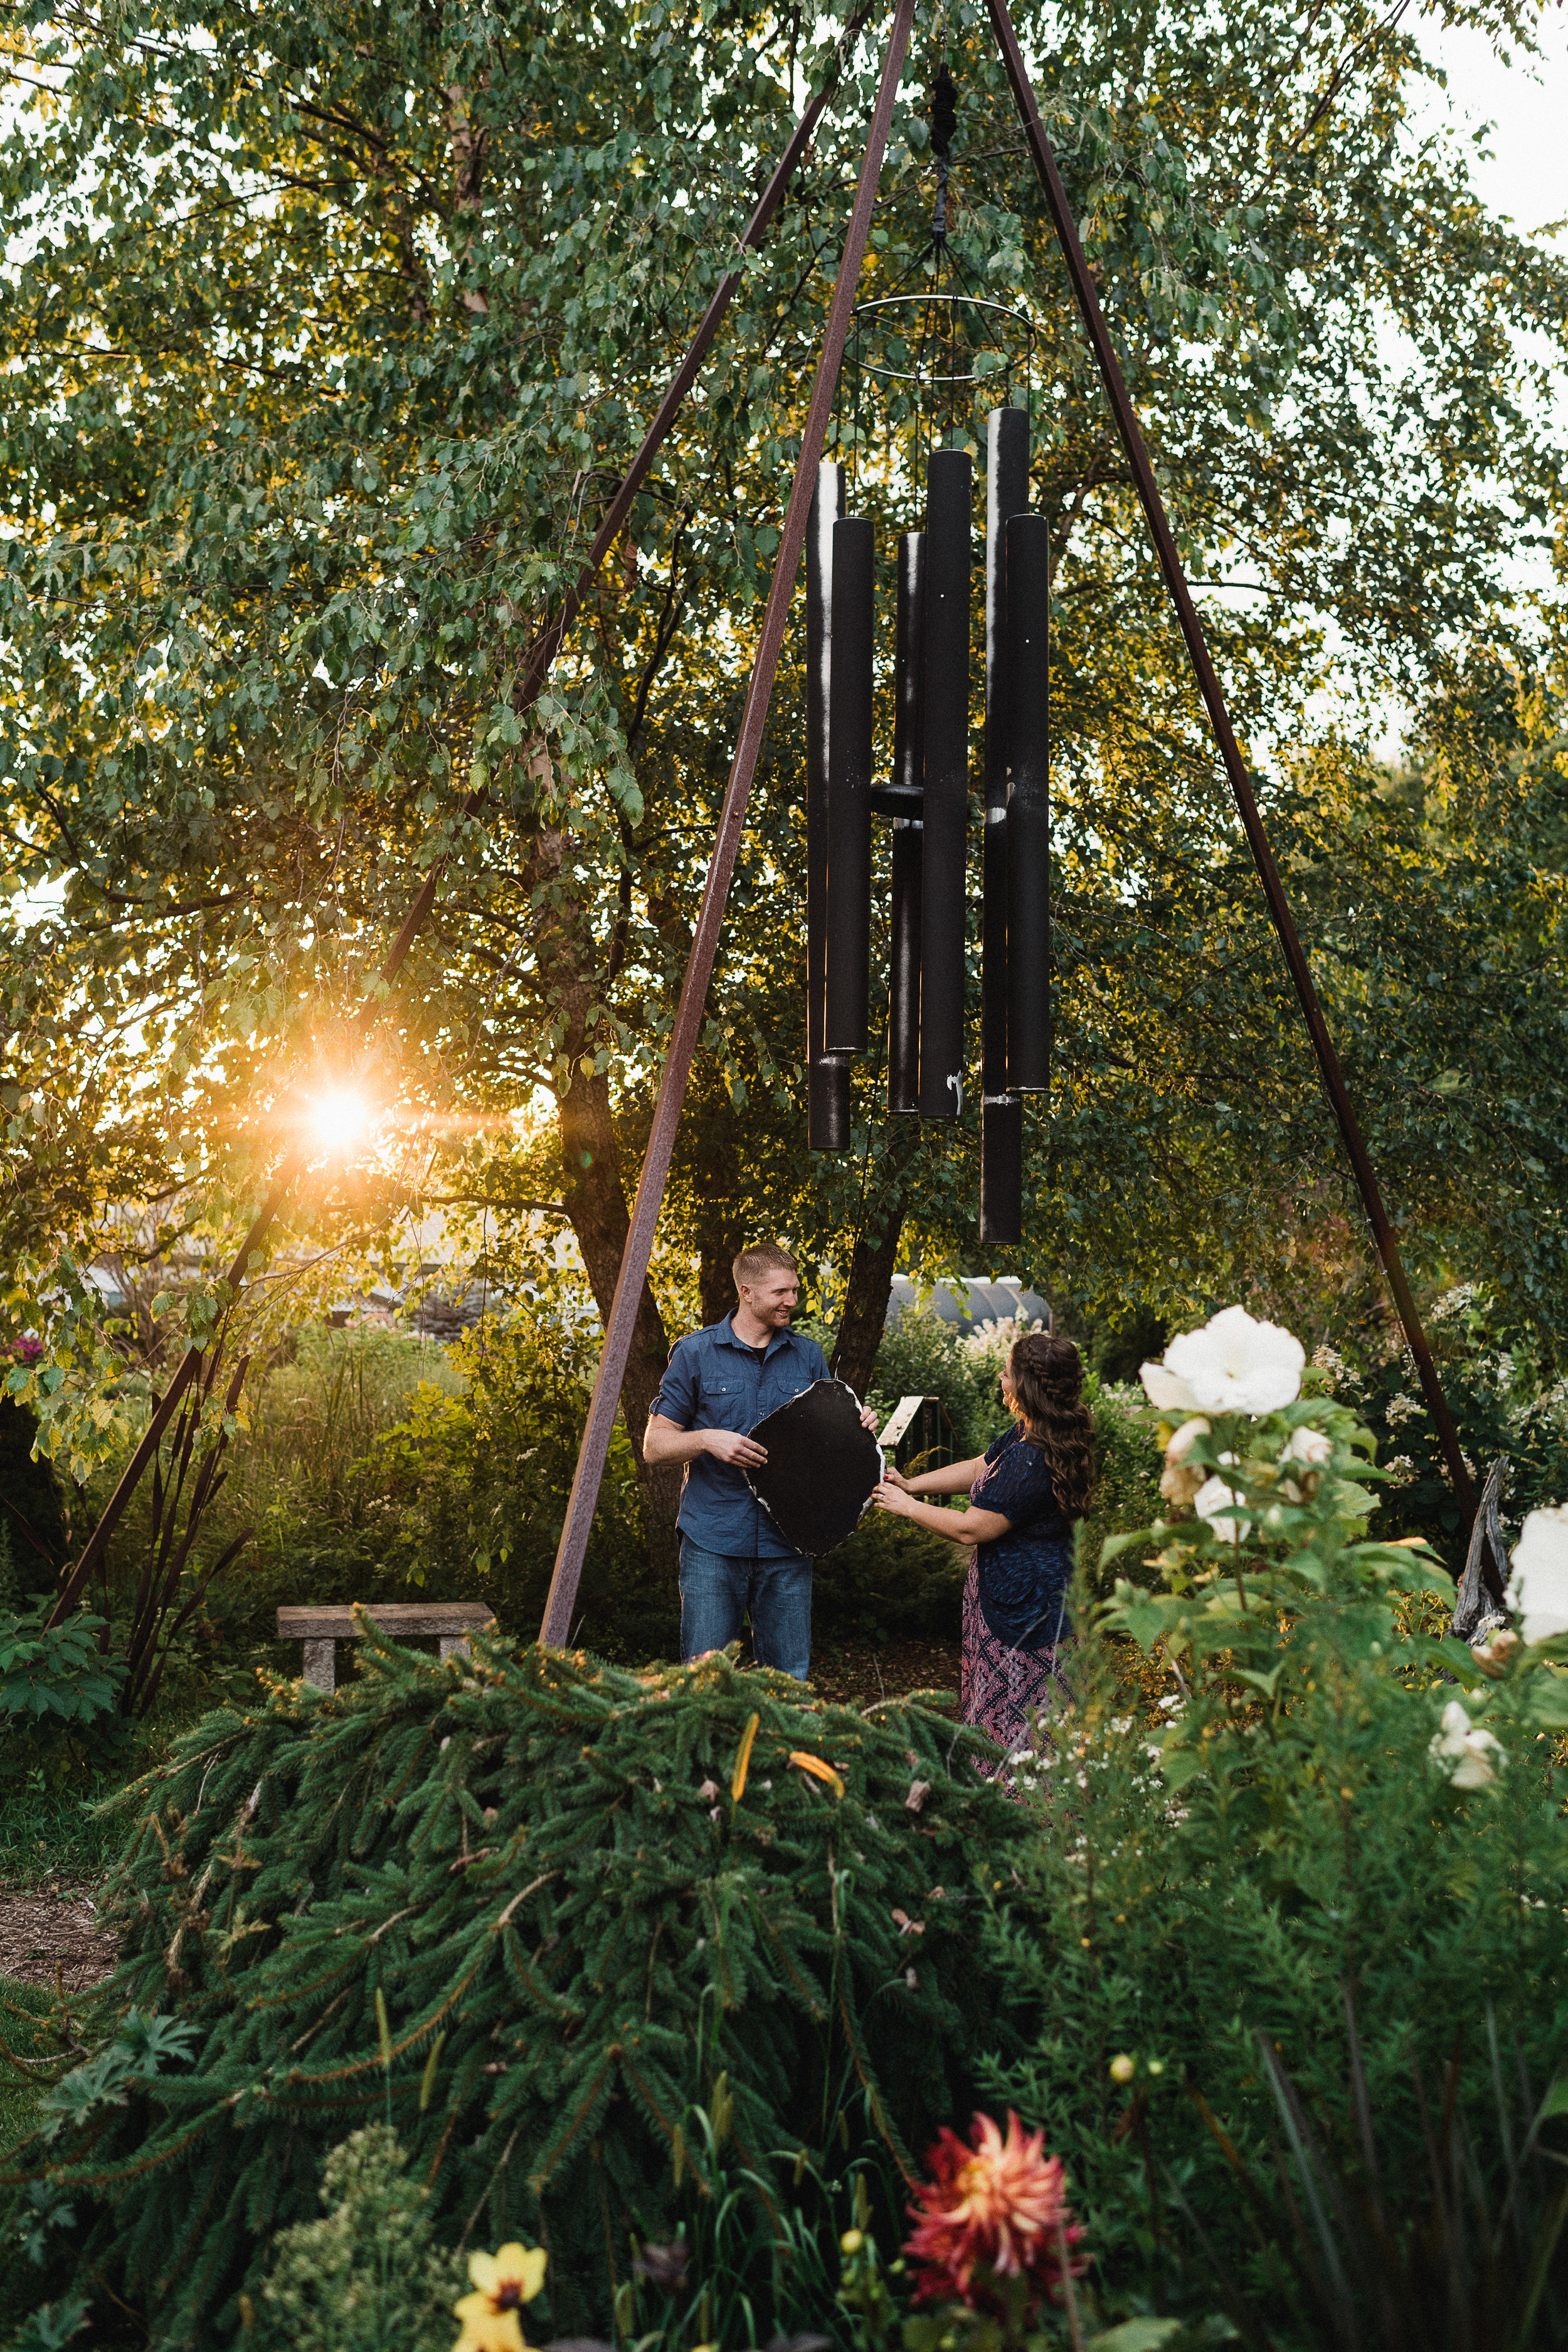 Engaged couple work together to make a gigantic garden wind chime make noise.